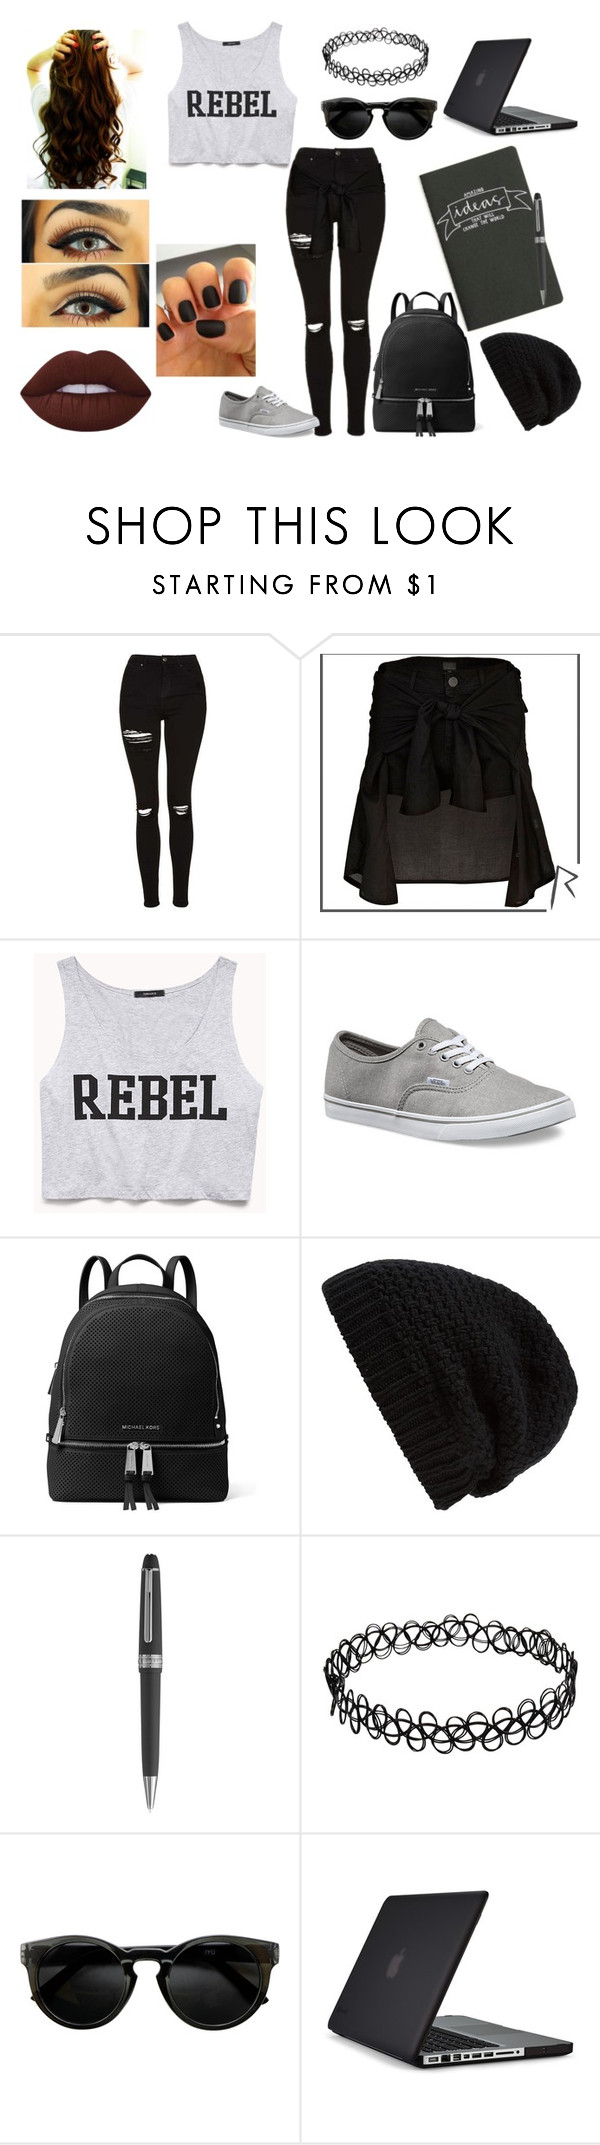 """""""The Divine Zero"""" by dearxadriana on Polyvore featuring Topshop, River Island, Forever 21, Vans, MICHAEL Michael Kors, Rick Owens, Montblanc, Speck, Lime Crime and bands"""